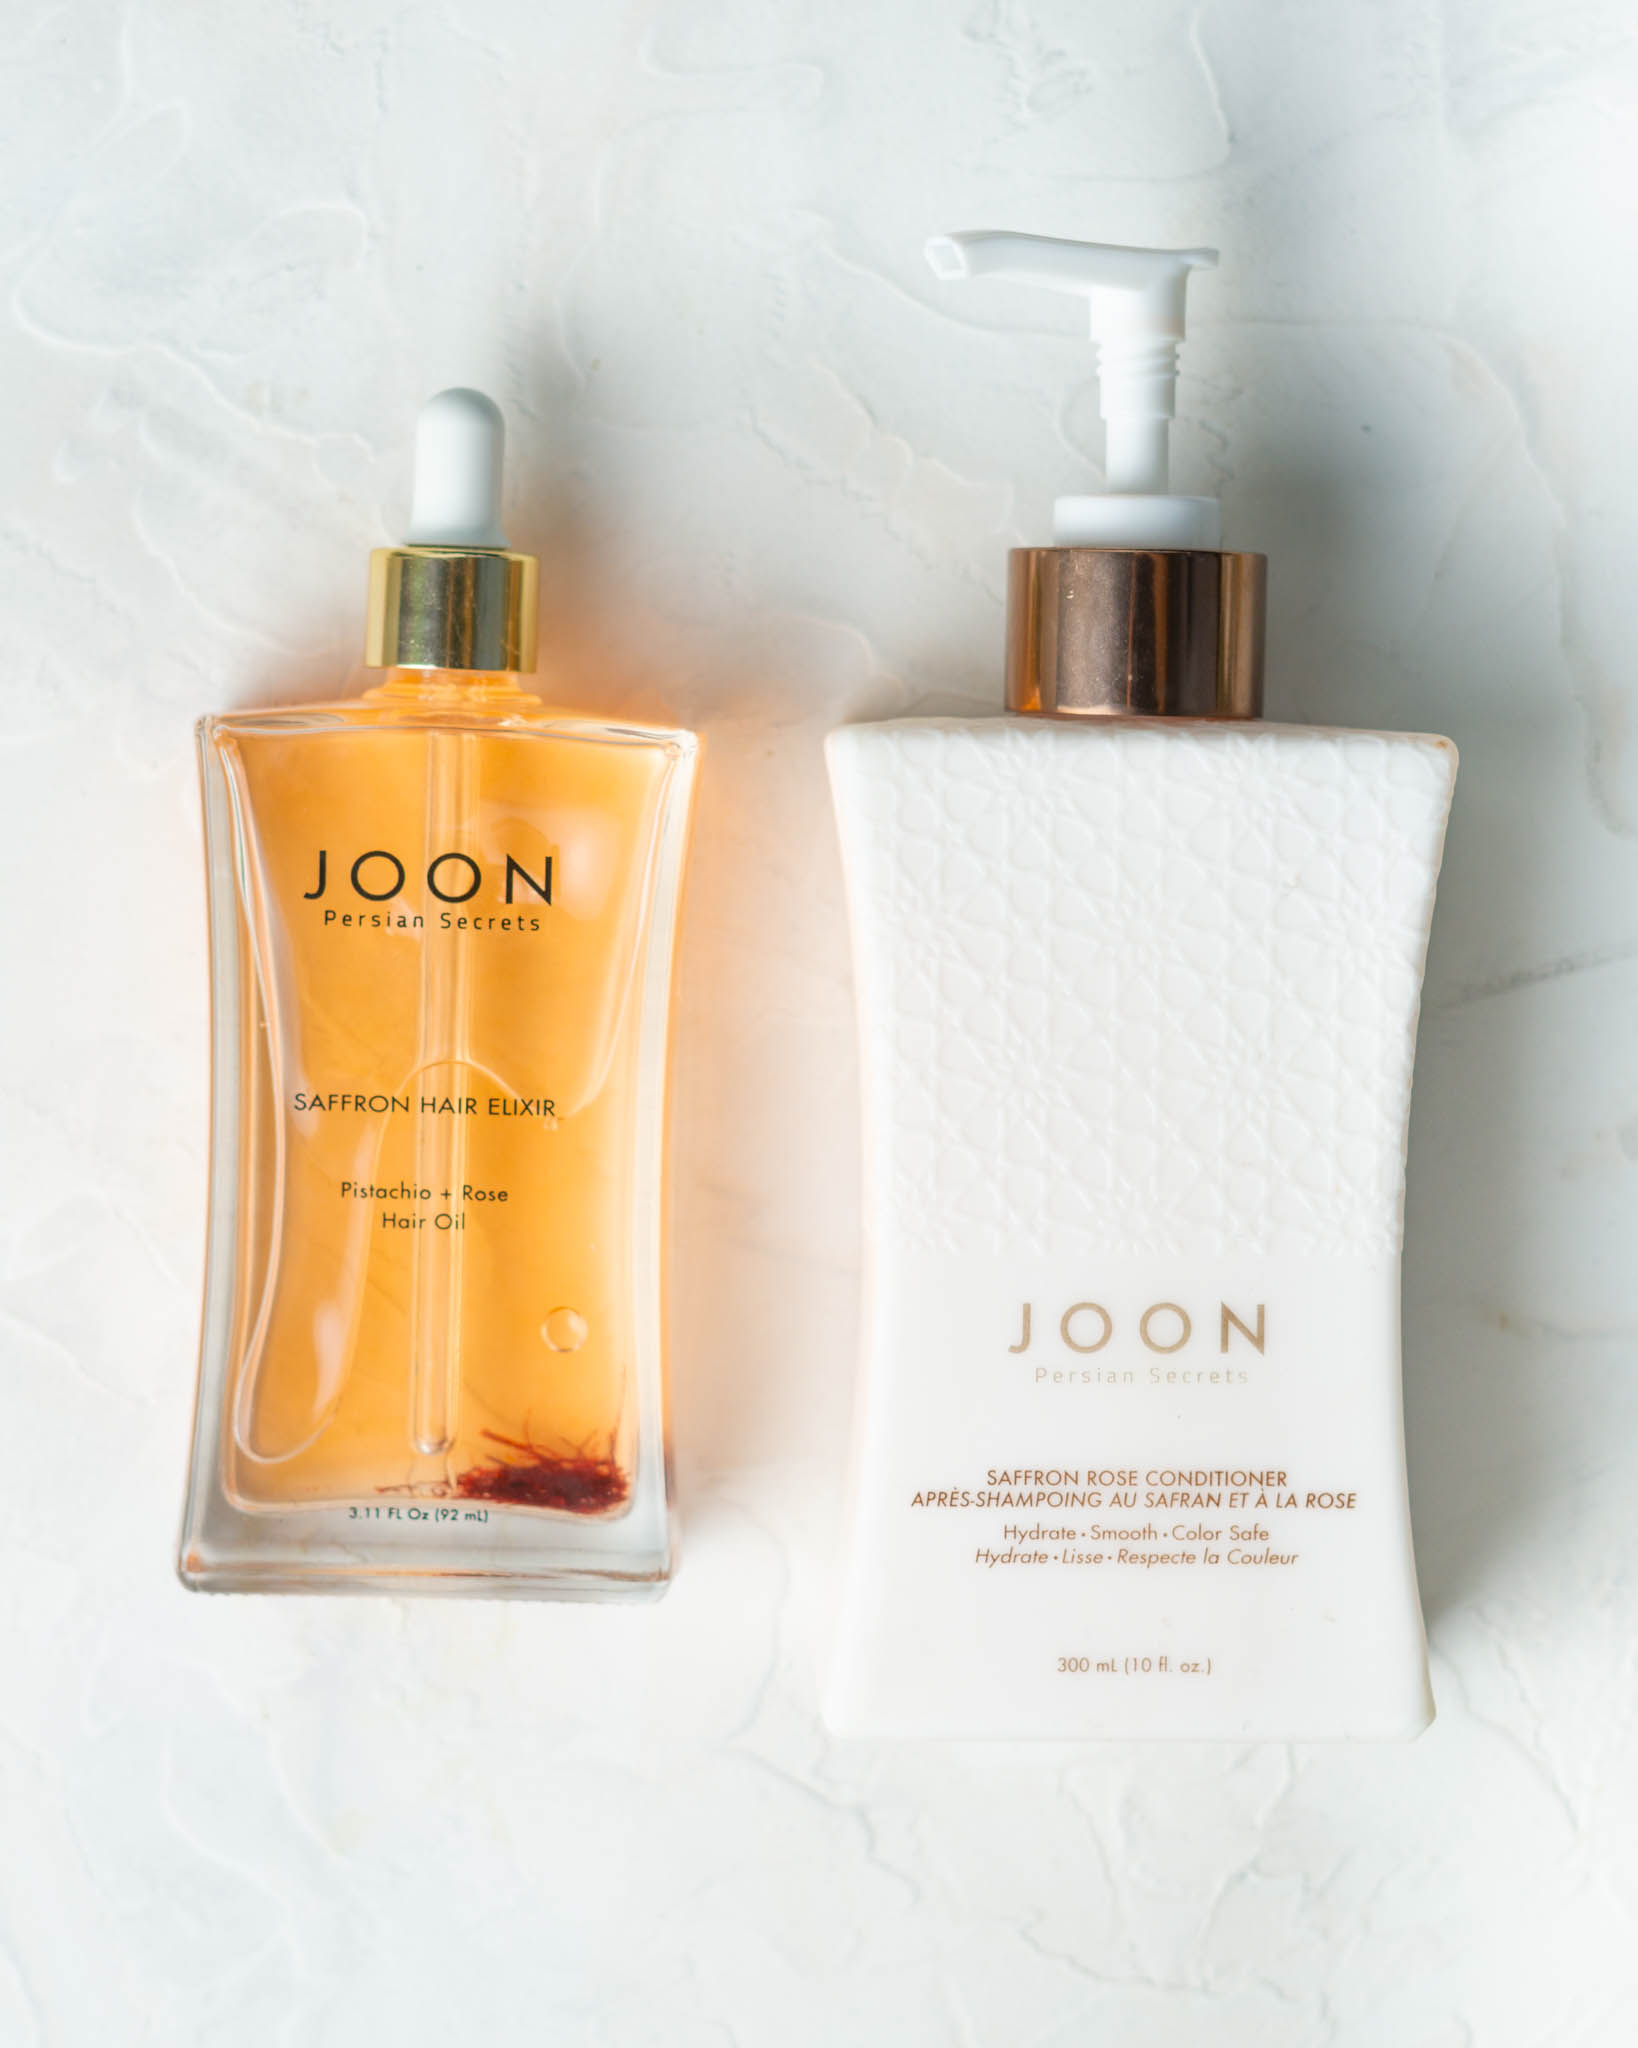 Joon Persian Secrets Hair Oil and Conditioner